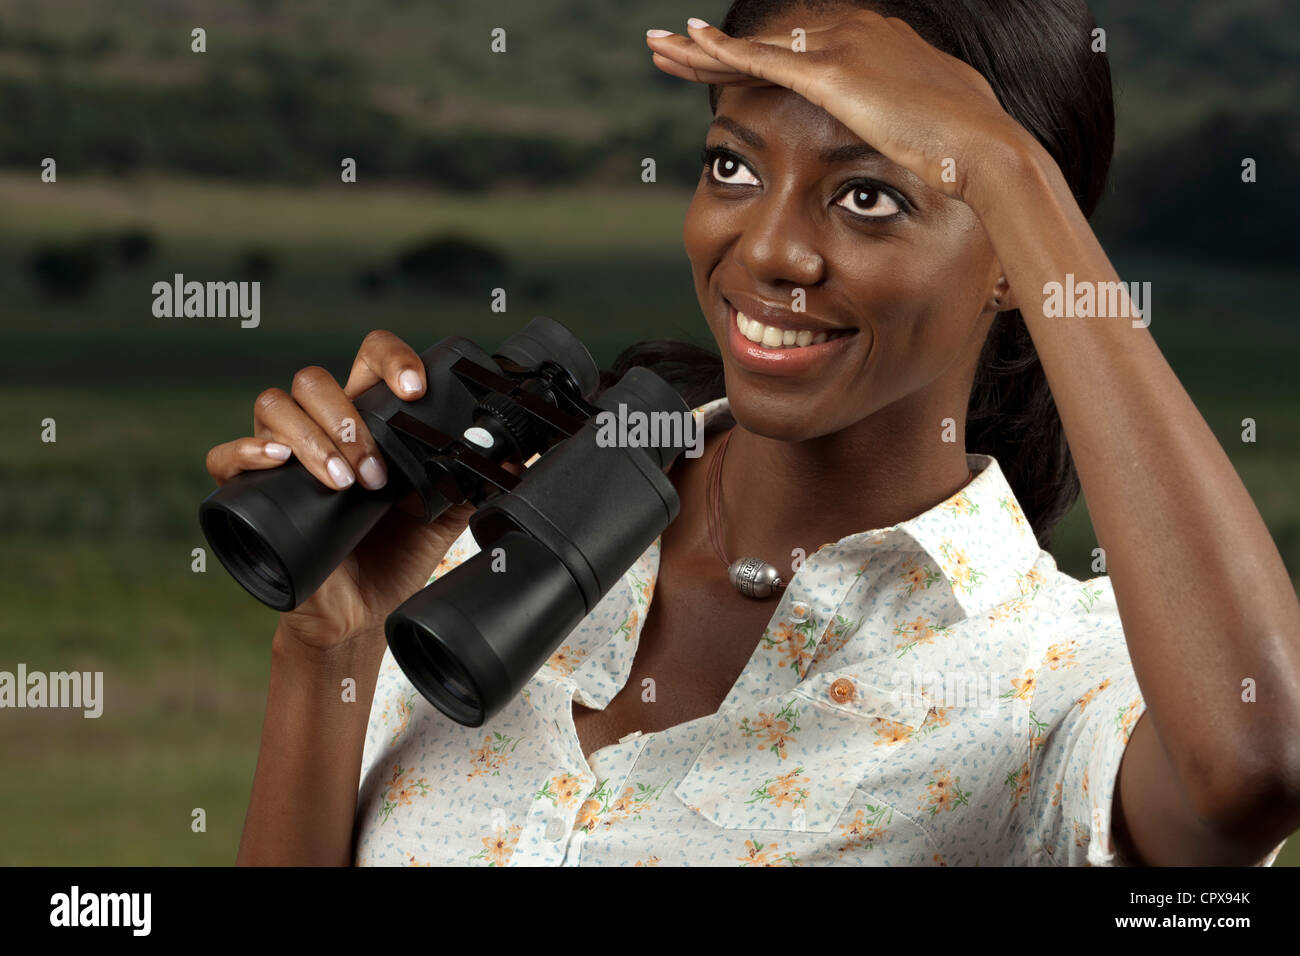 An African woman searches for game while holding binoculars - Stock Image